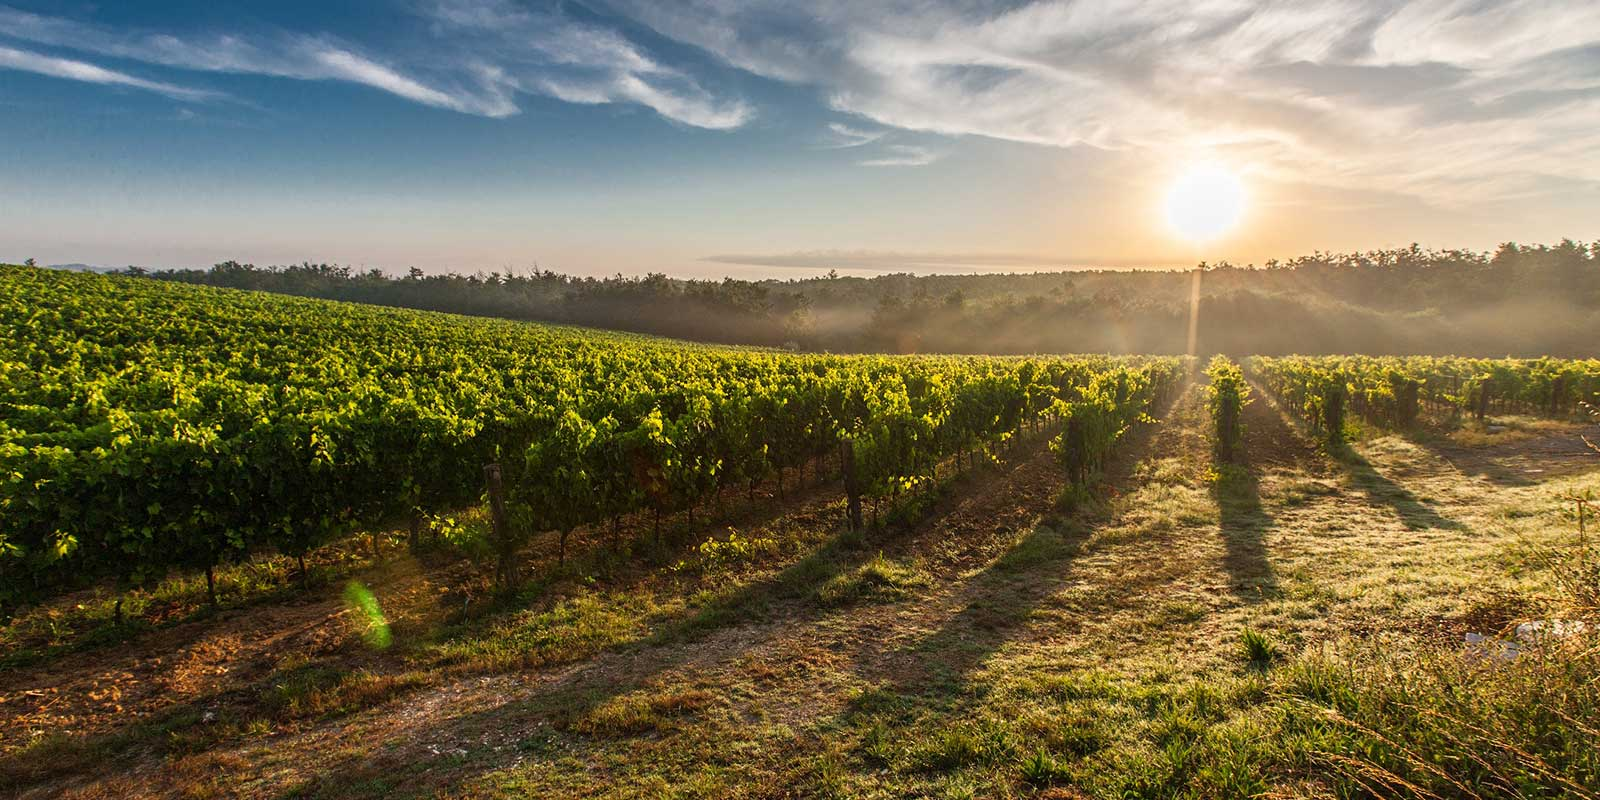 - Wines from The Land Down Under